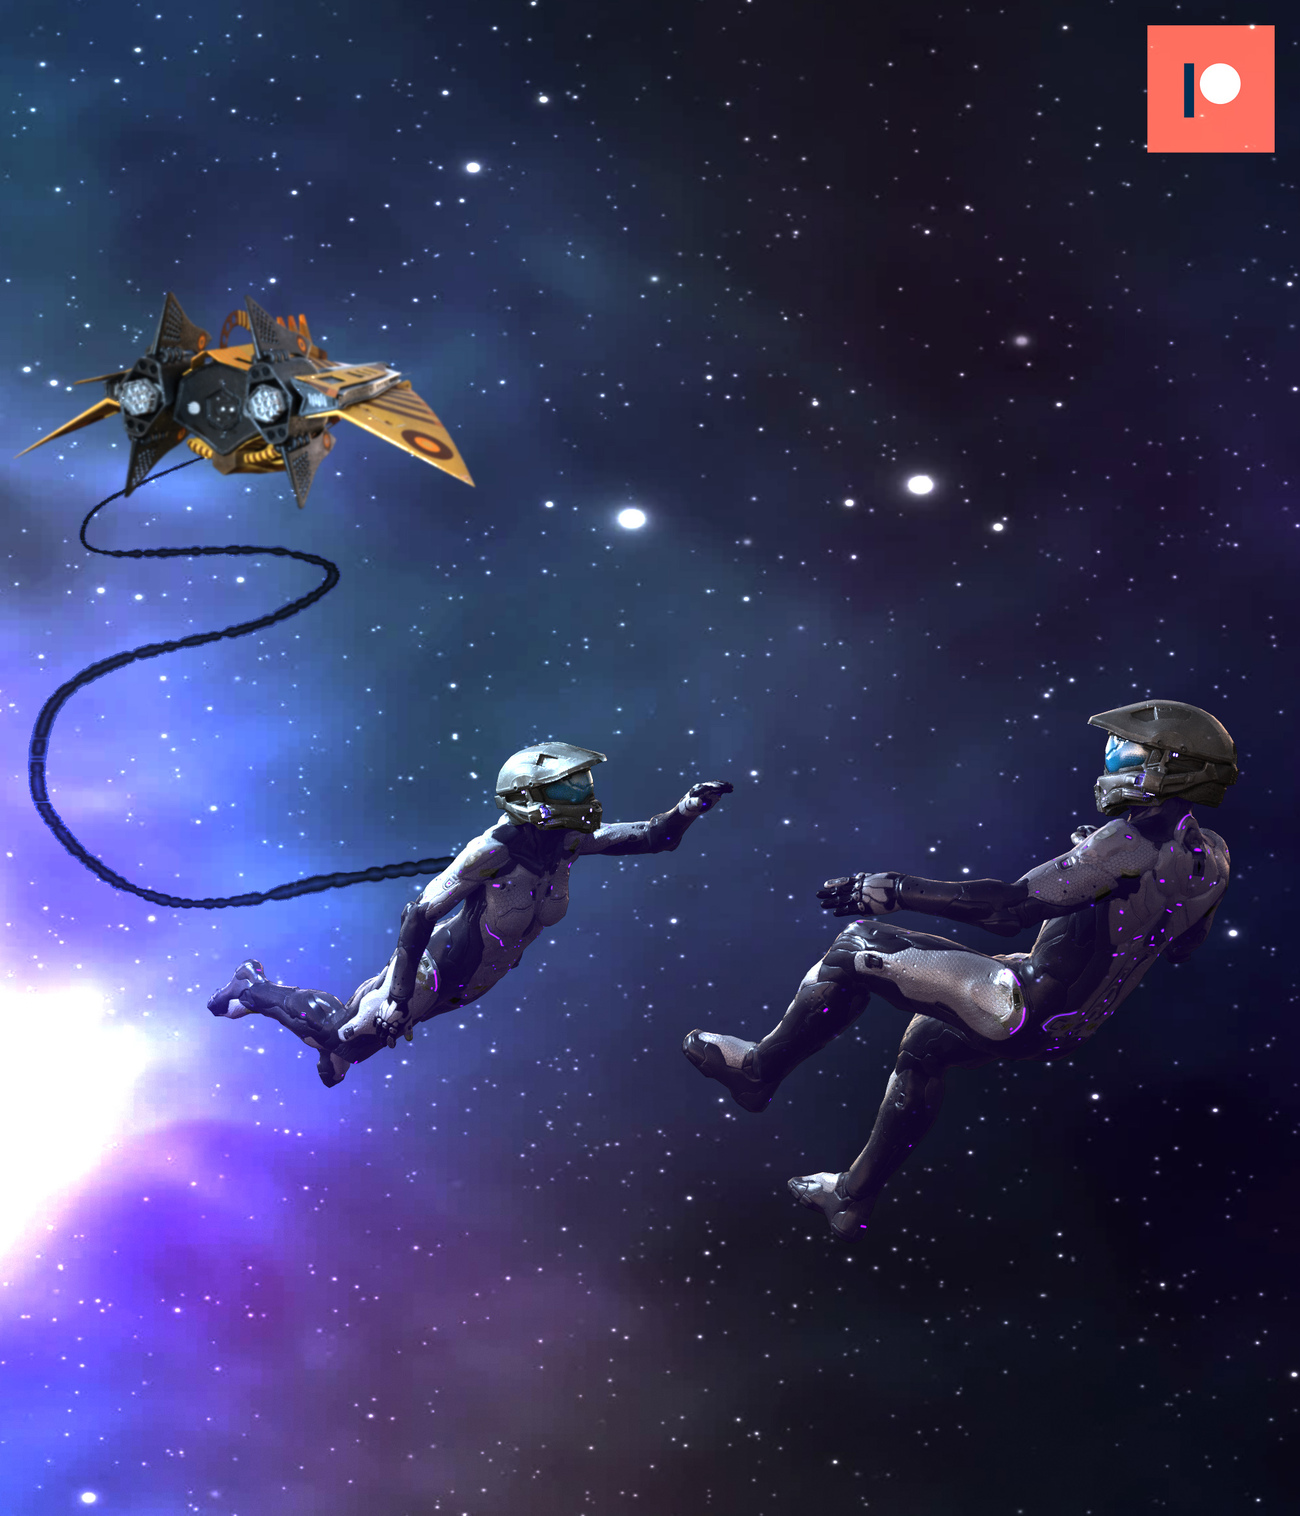 Rescue Mission by lstowe